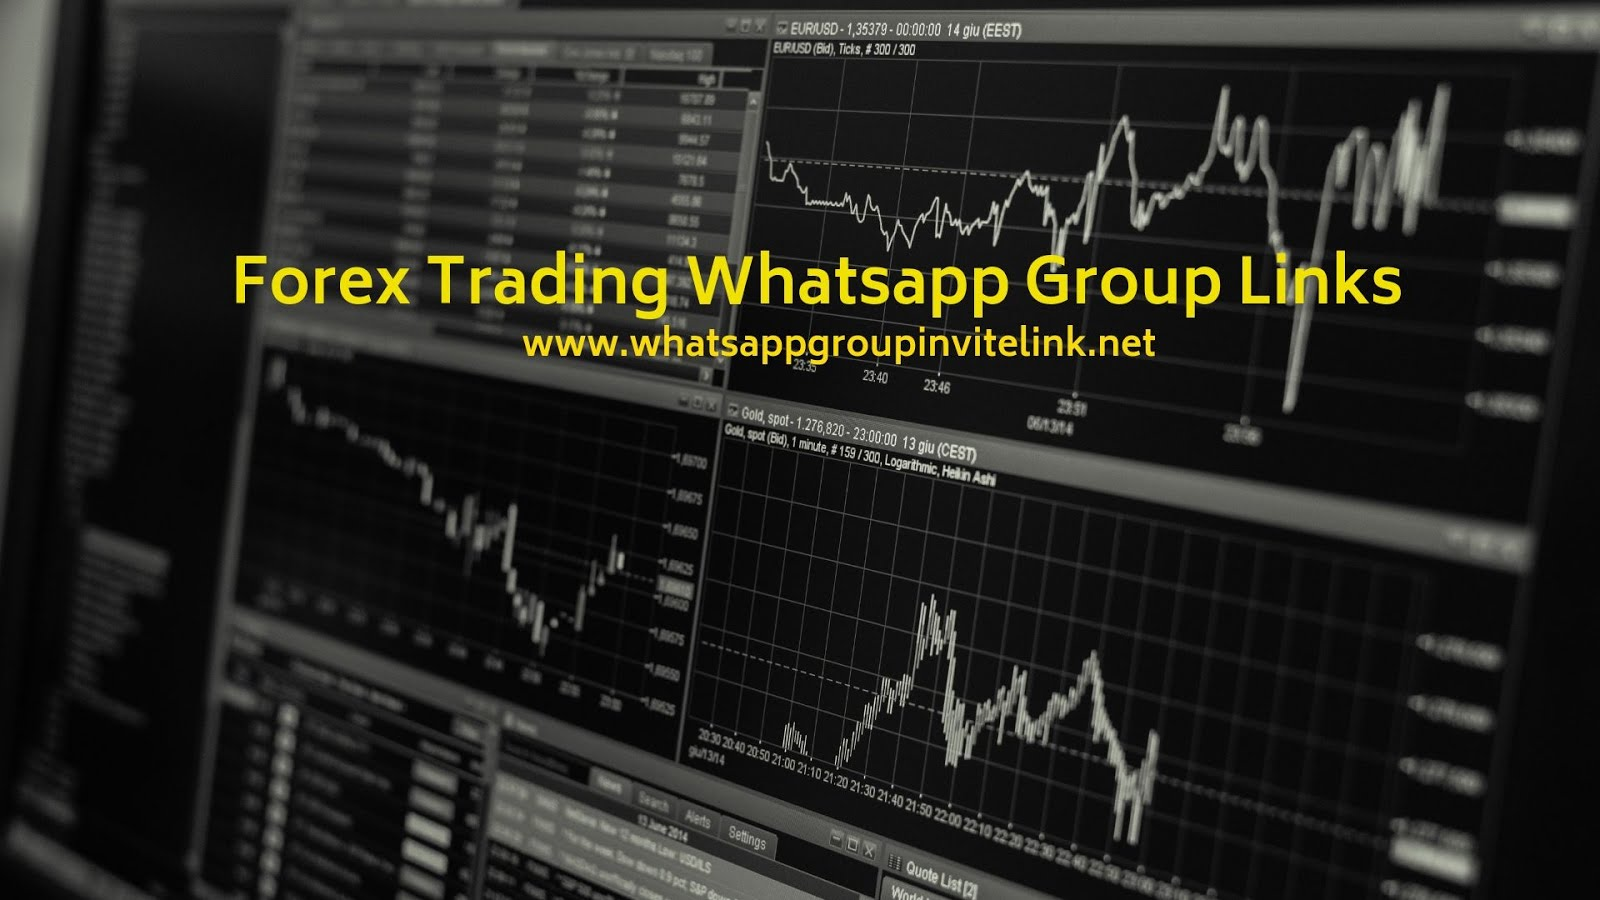 Whatsapp Group Invite Links: Forex Trading Whatsapp Group Links